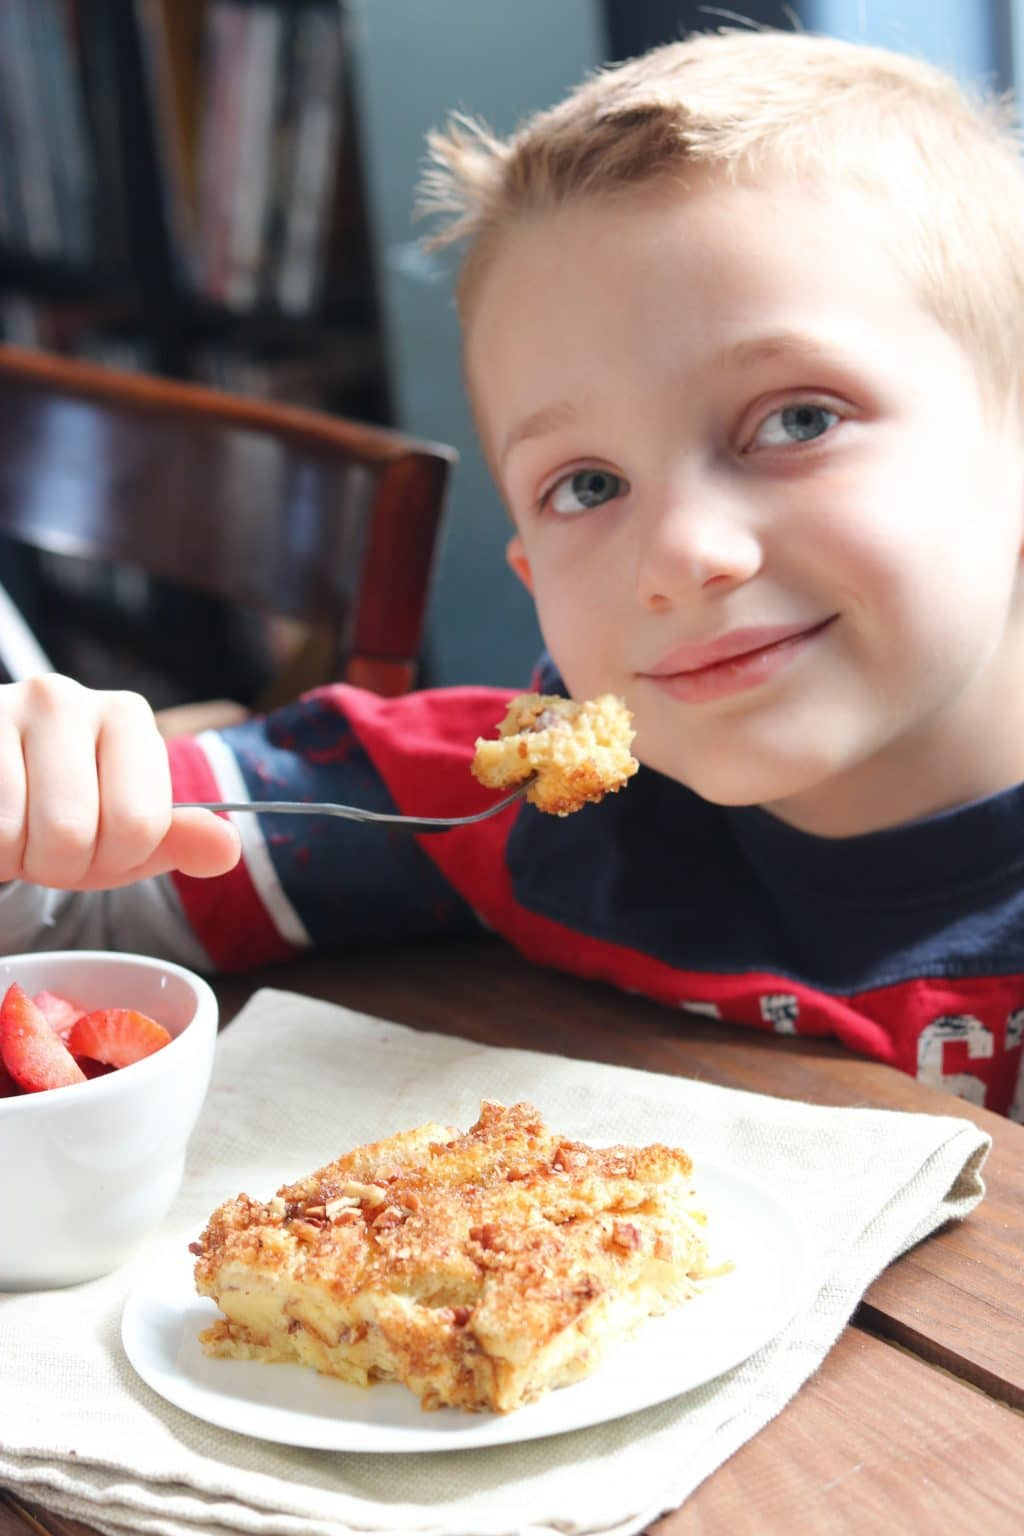 A little boy sitting at a table eating food baked french toast